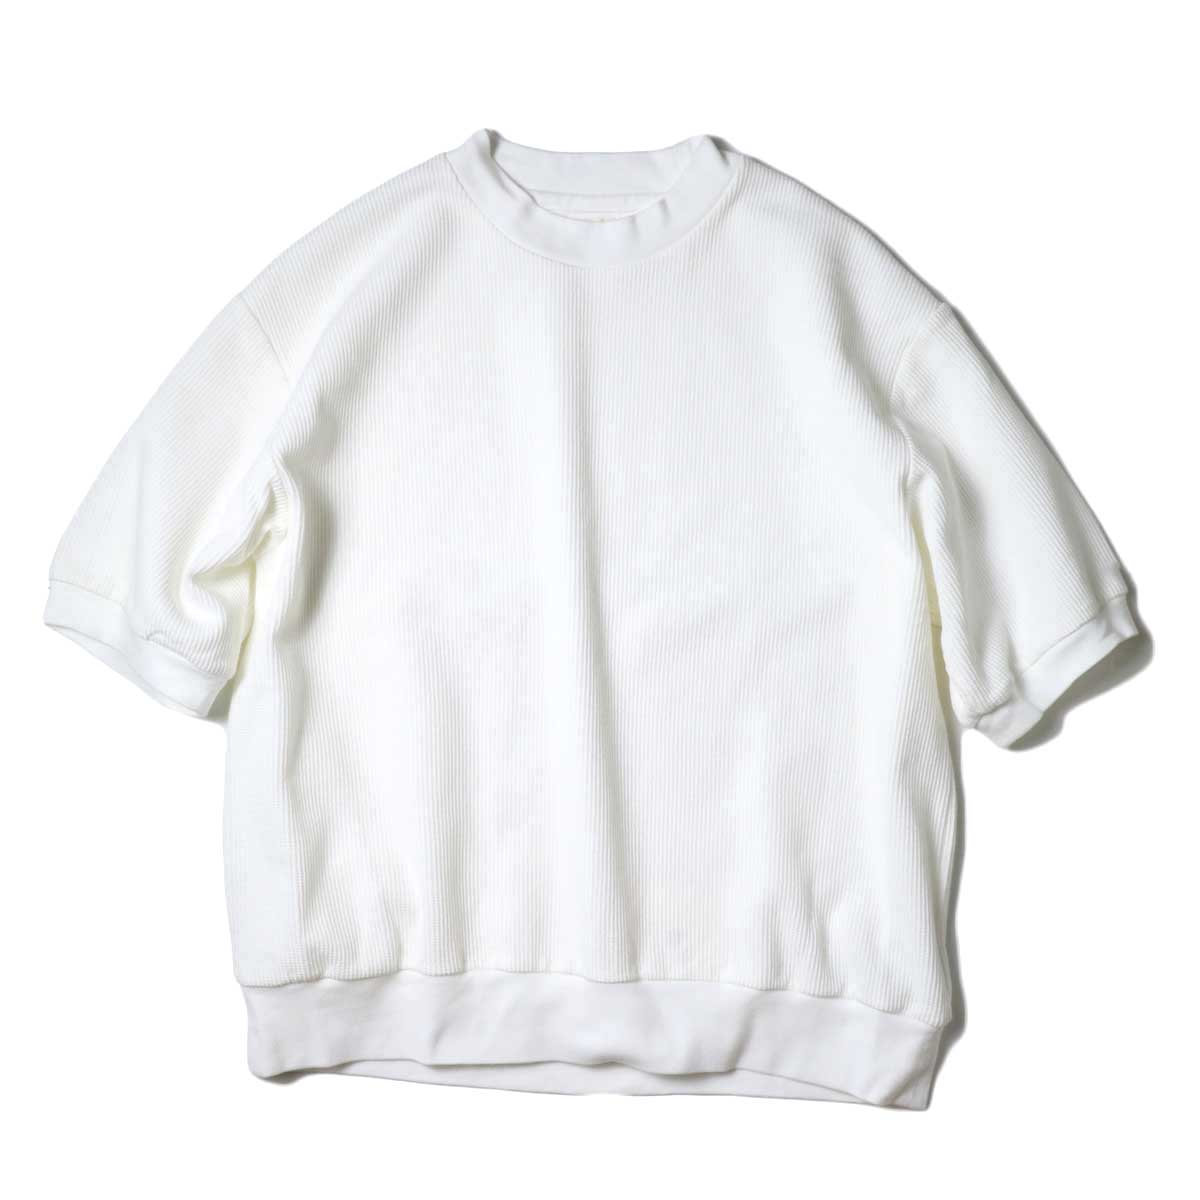 blurhms / Rough&Smooth Thermal Pullover S/S (Off) 正面